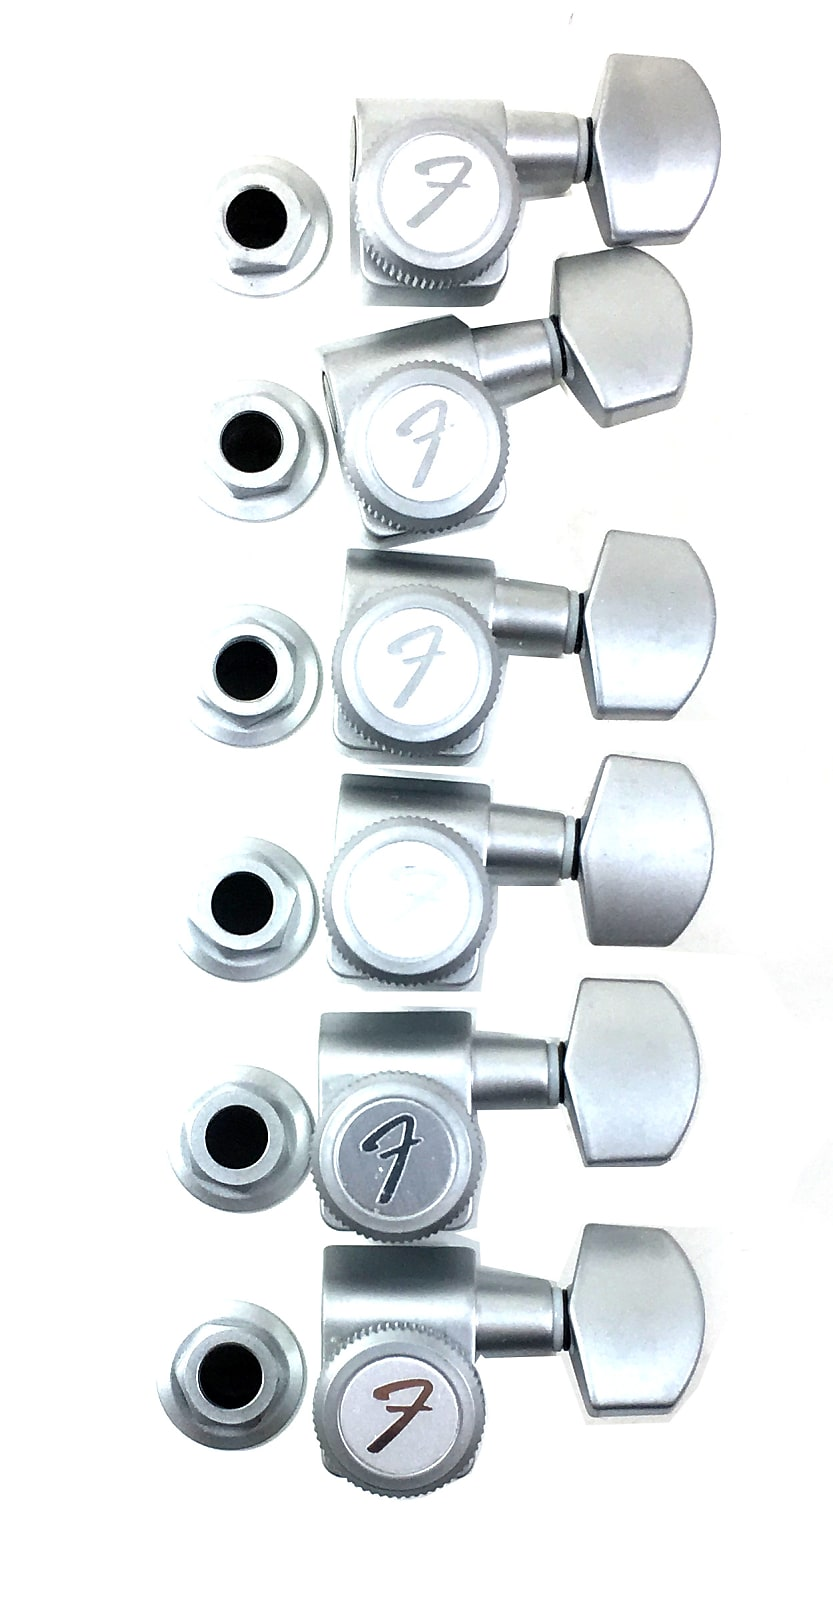 Fender Locking Tuners >> Fender Locking Tuners Tuning Machine Strat Tele In Line Brushed Chrome 2 Pin